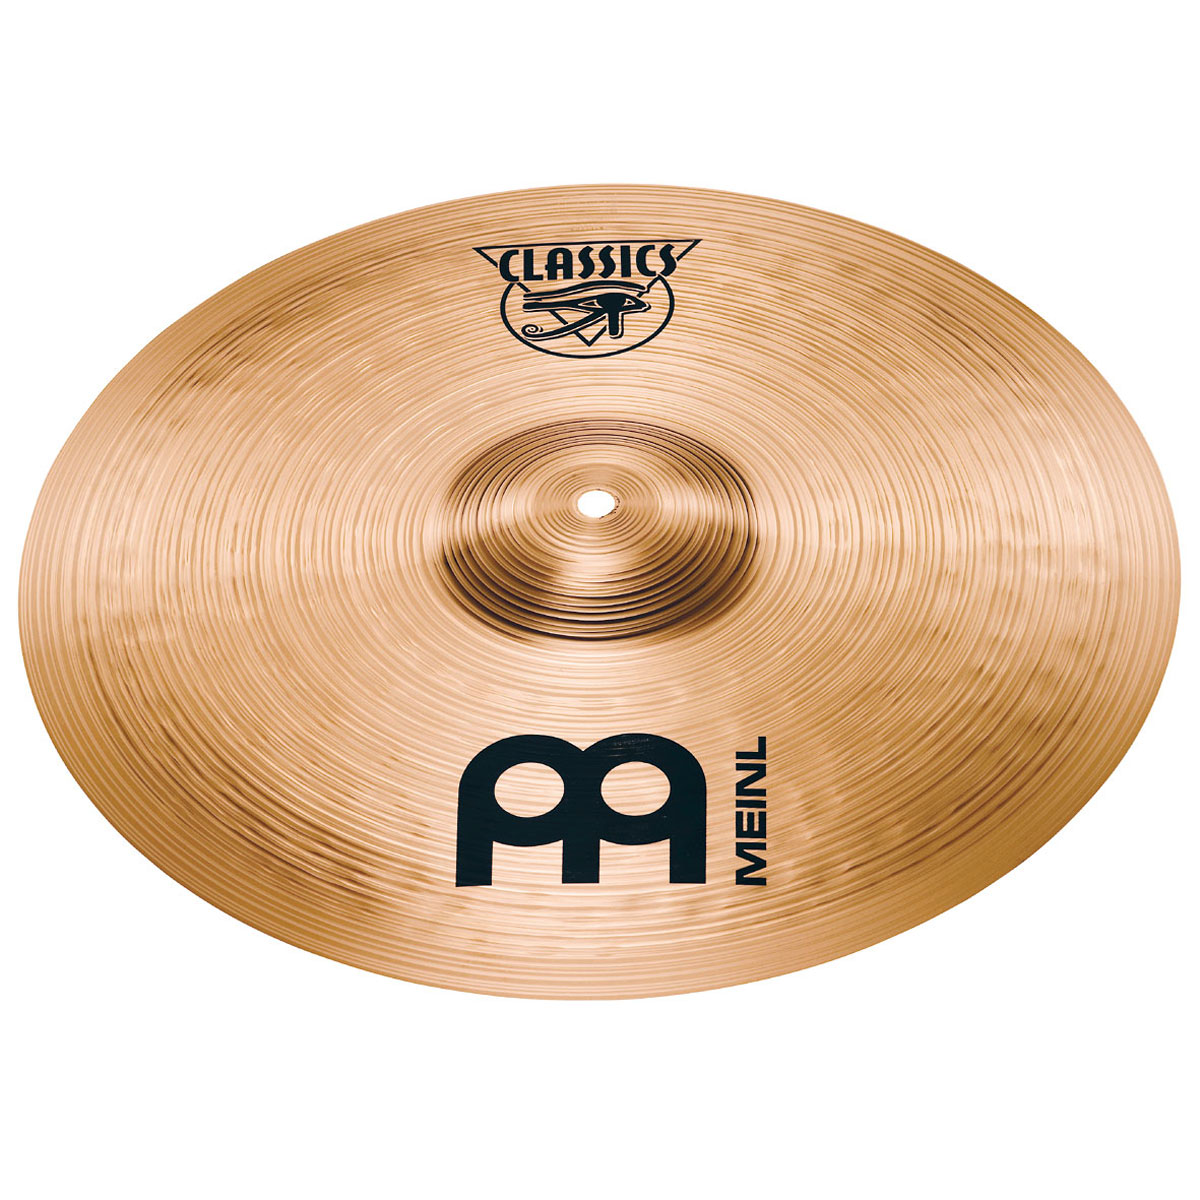 "Meinl 20"" Classic Medium Ride Cymbal"